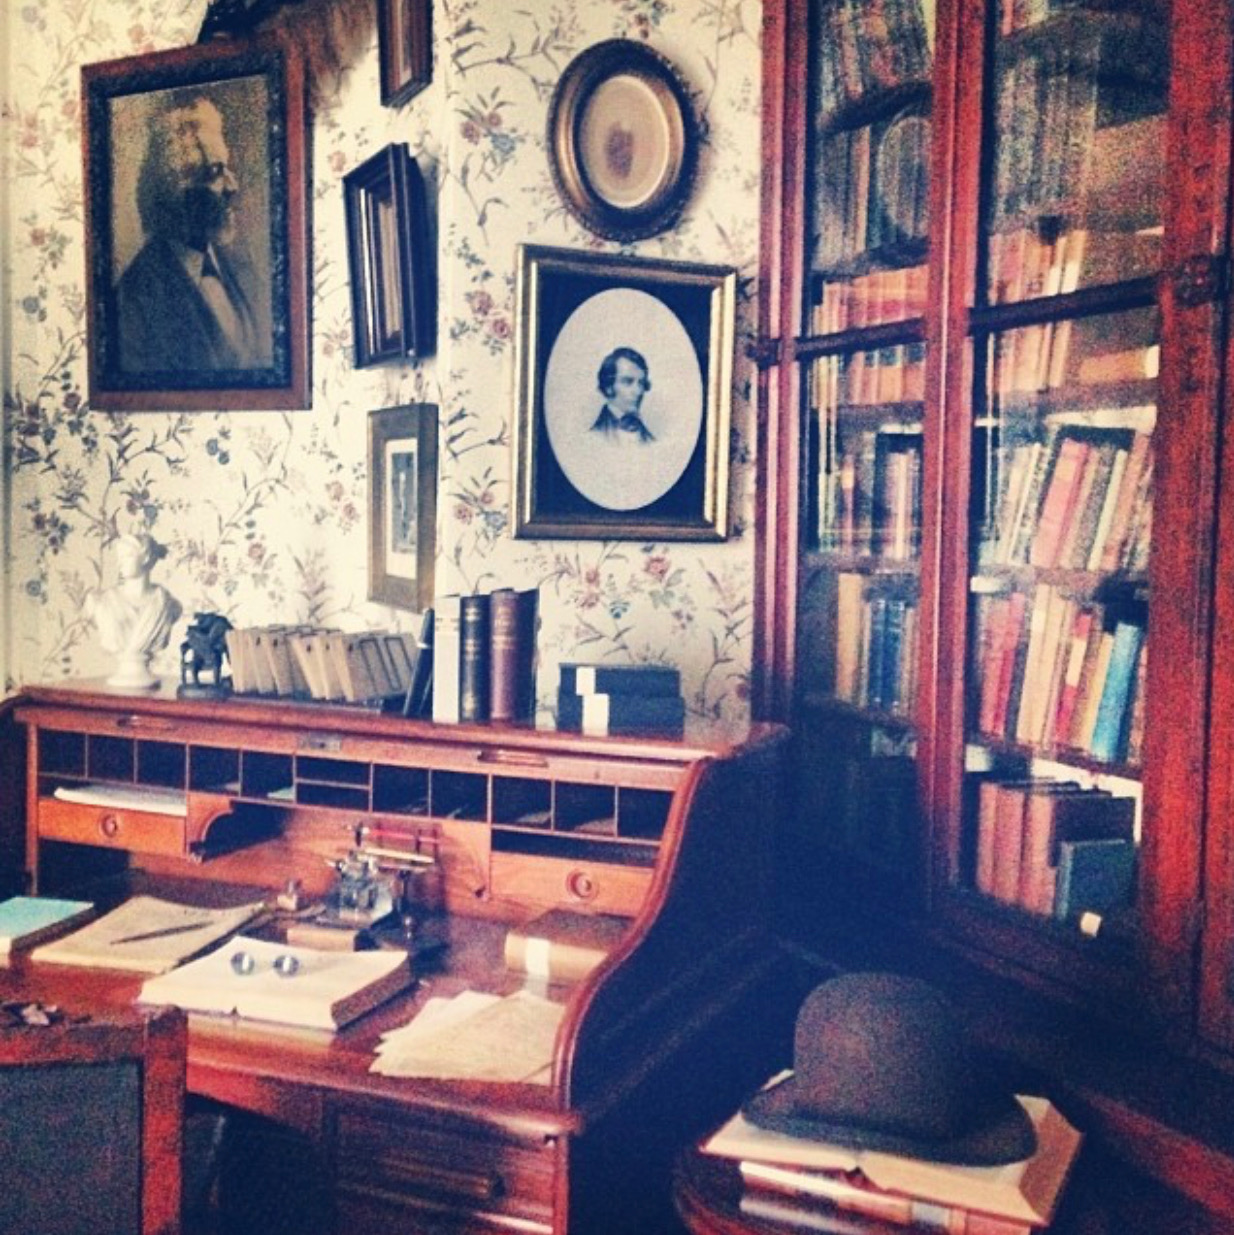 - You can visit the HOME he created!The library is obviously the coolest room in the house…